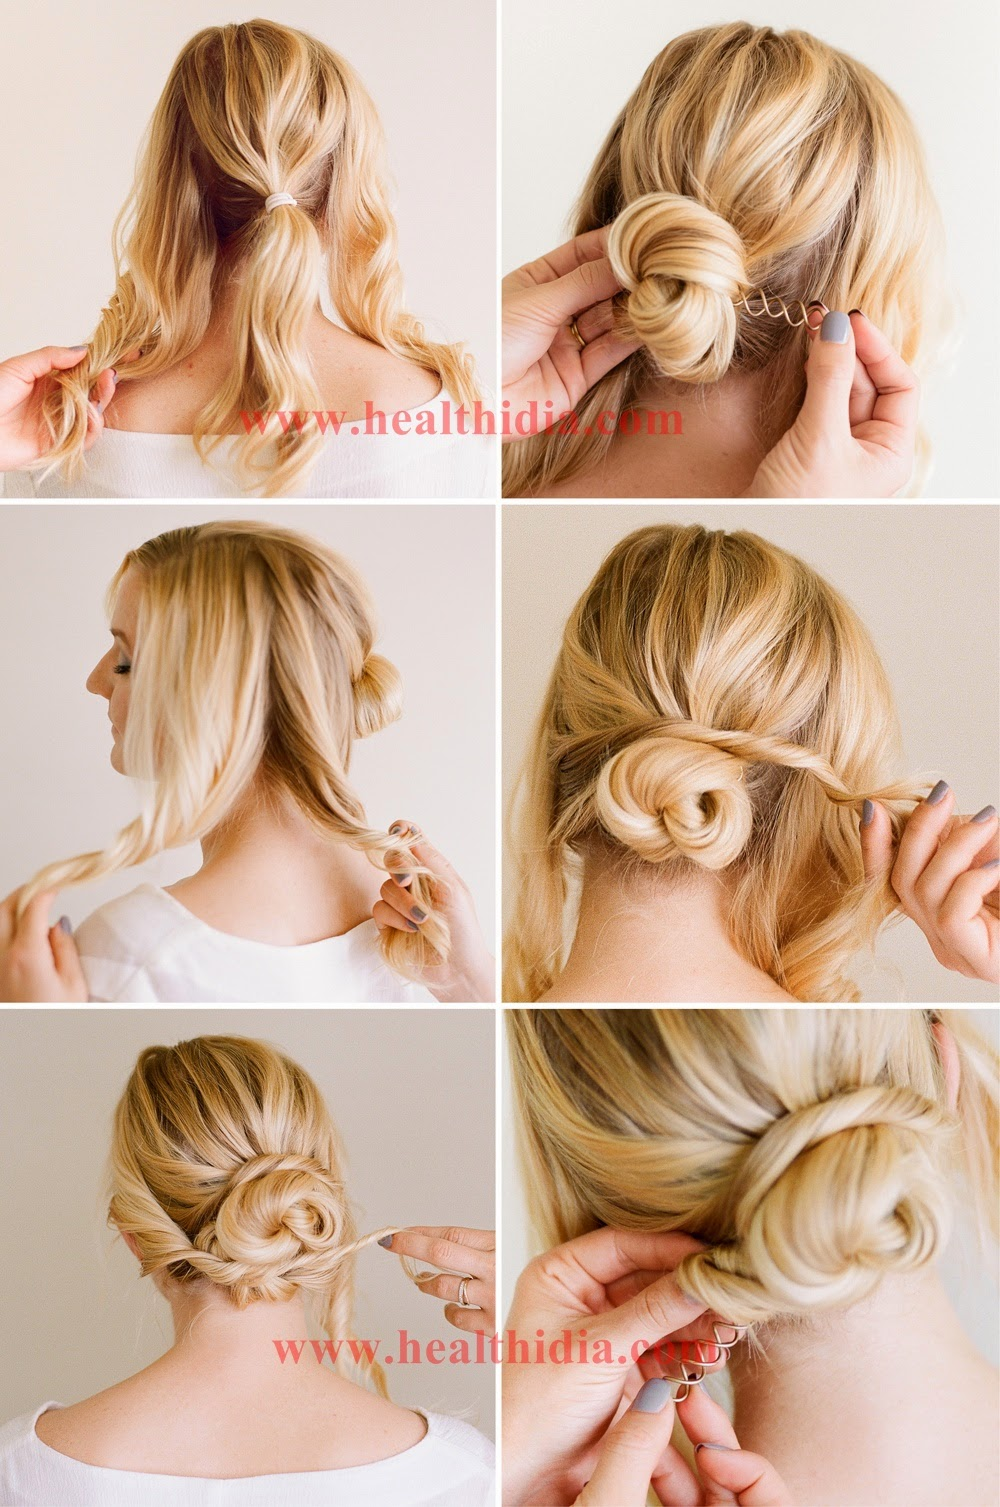 Hairstyles For Girls For School Trend Dohoaso